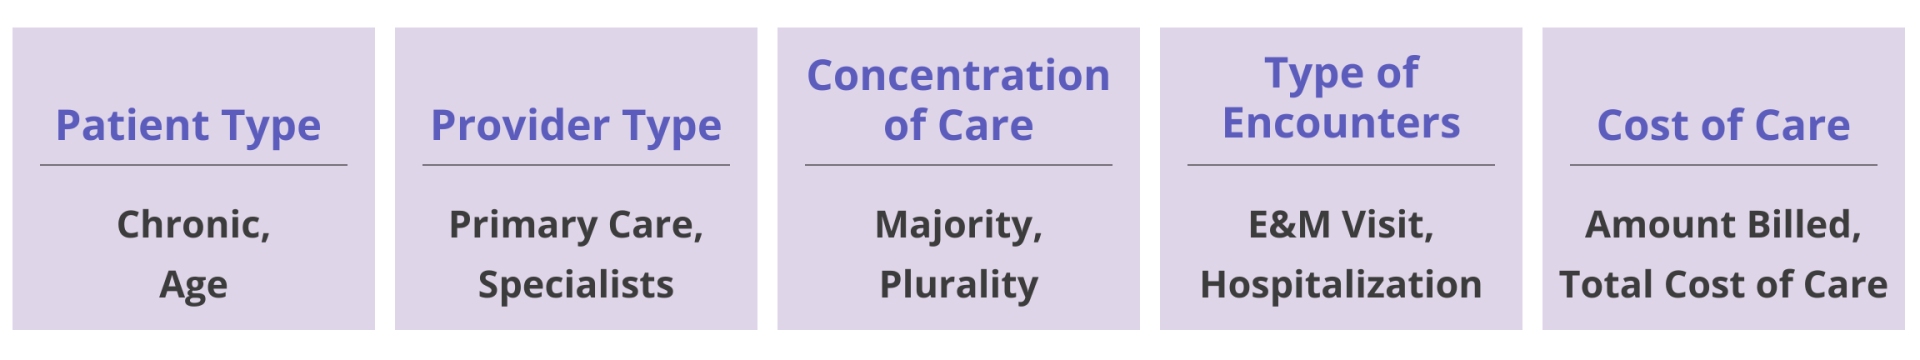 Patient Type (chronic, age)  Provider Type (primary care, specialists)  Concentration of Care (majority, plurality) Type of Encounters (E&M visit, hospitalization)  Cost of Care (amount billed, total cost of care)